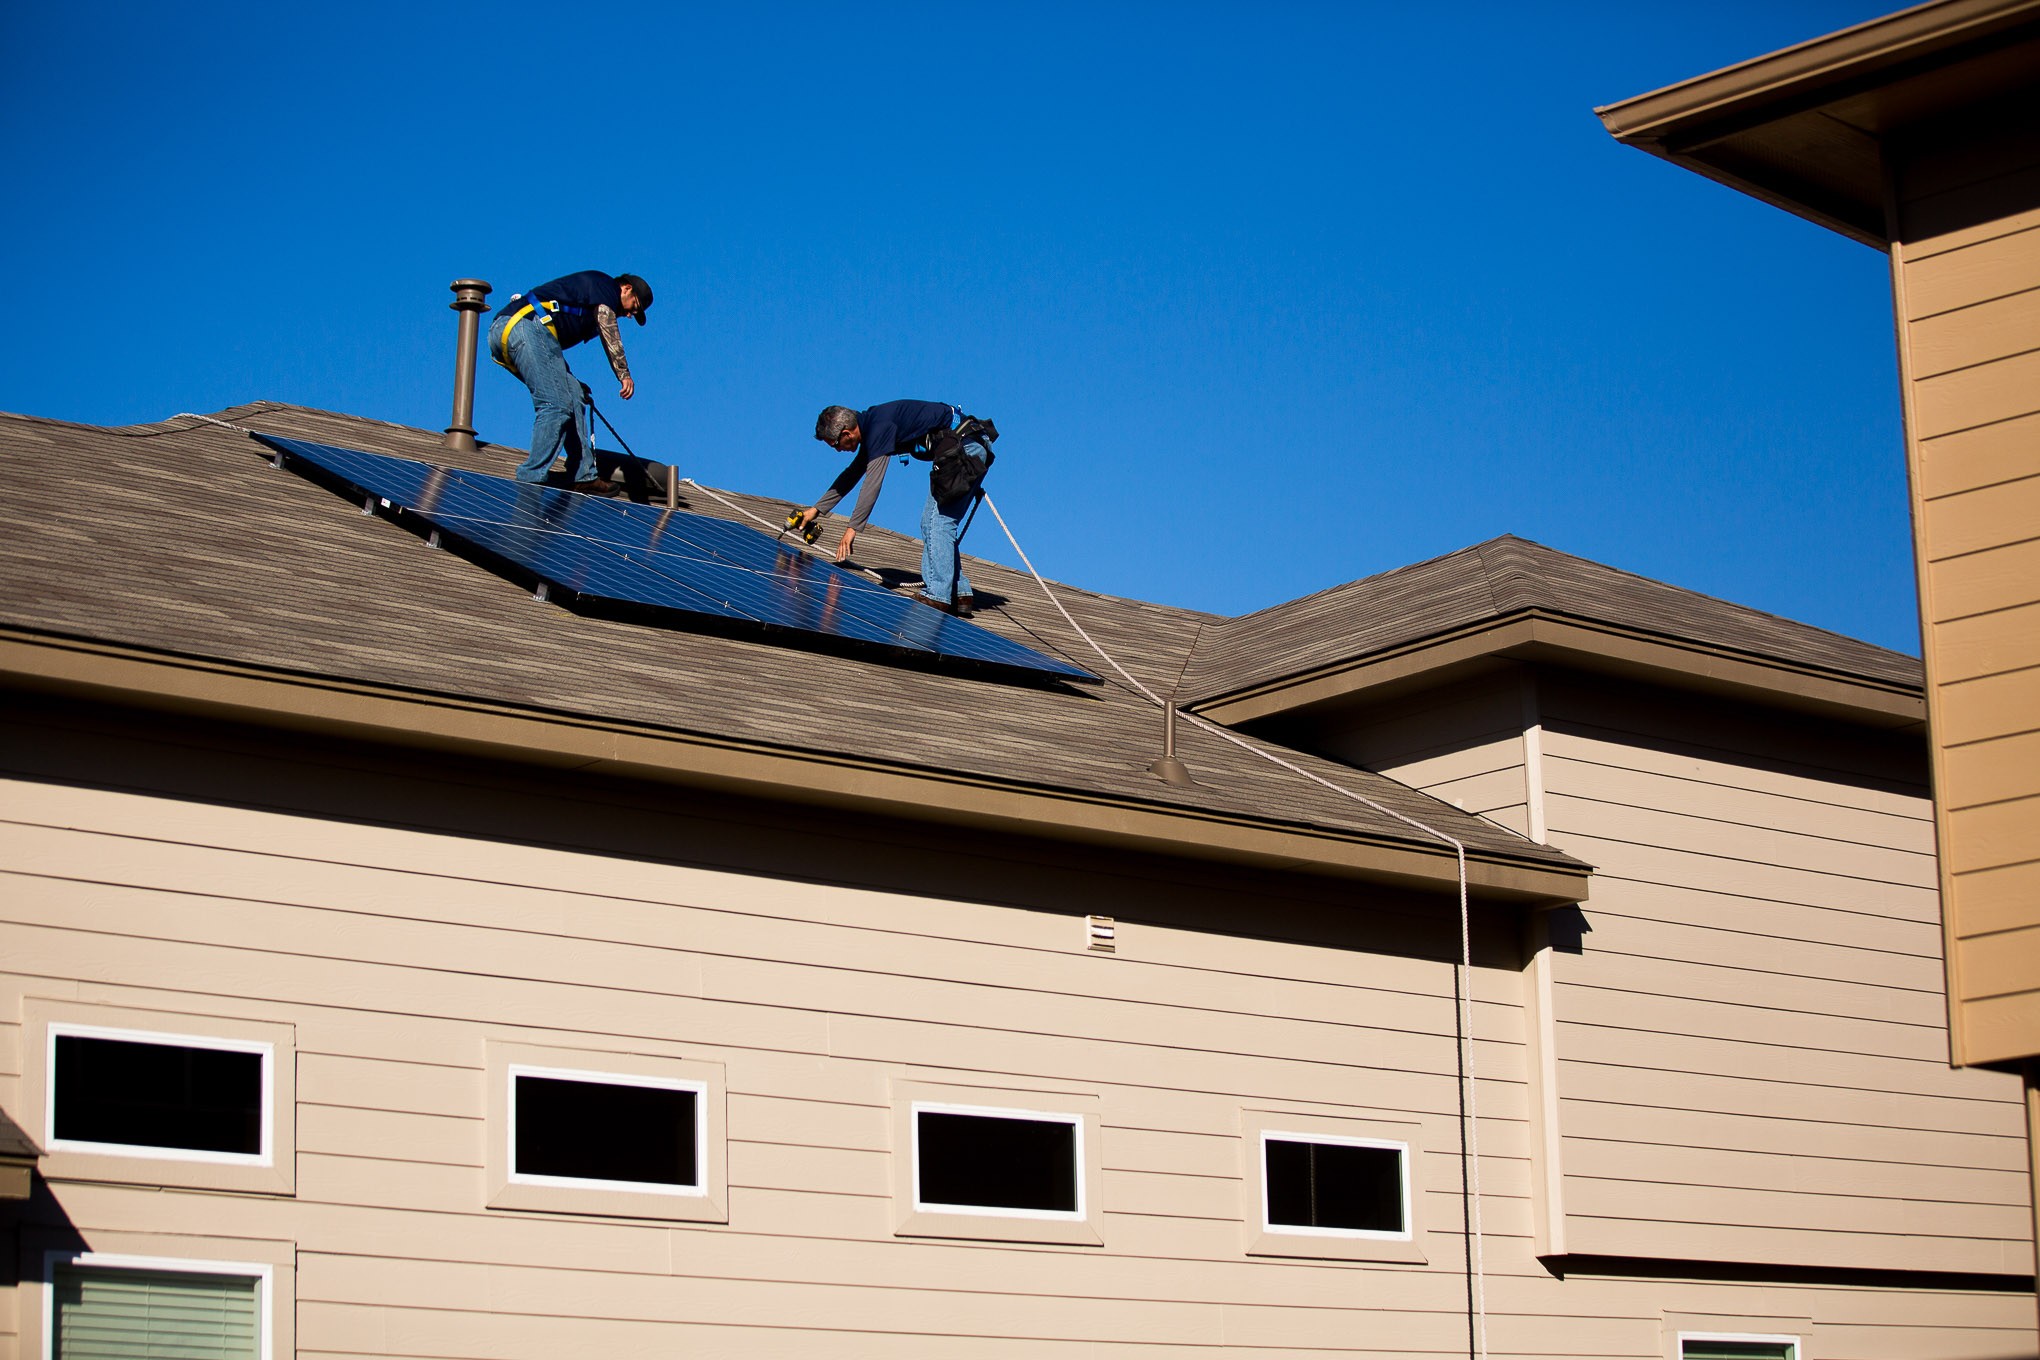 Workers install solar panels on a residential home in 2016. CPS Energy offers rebates to encourage residents to invest in energy-saving home improvements like solar panels.